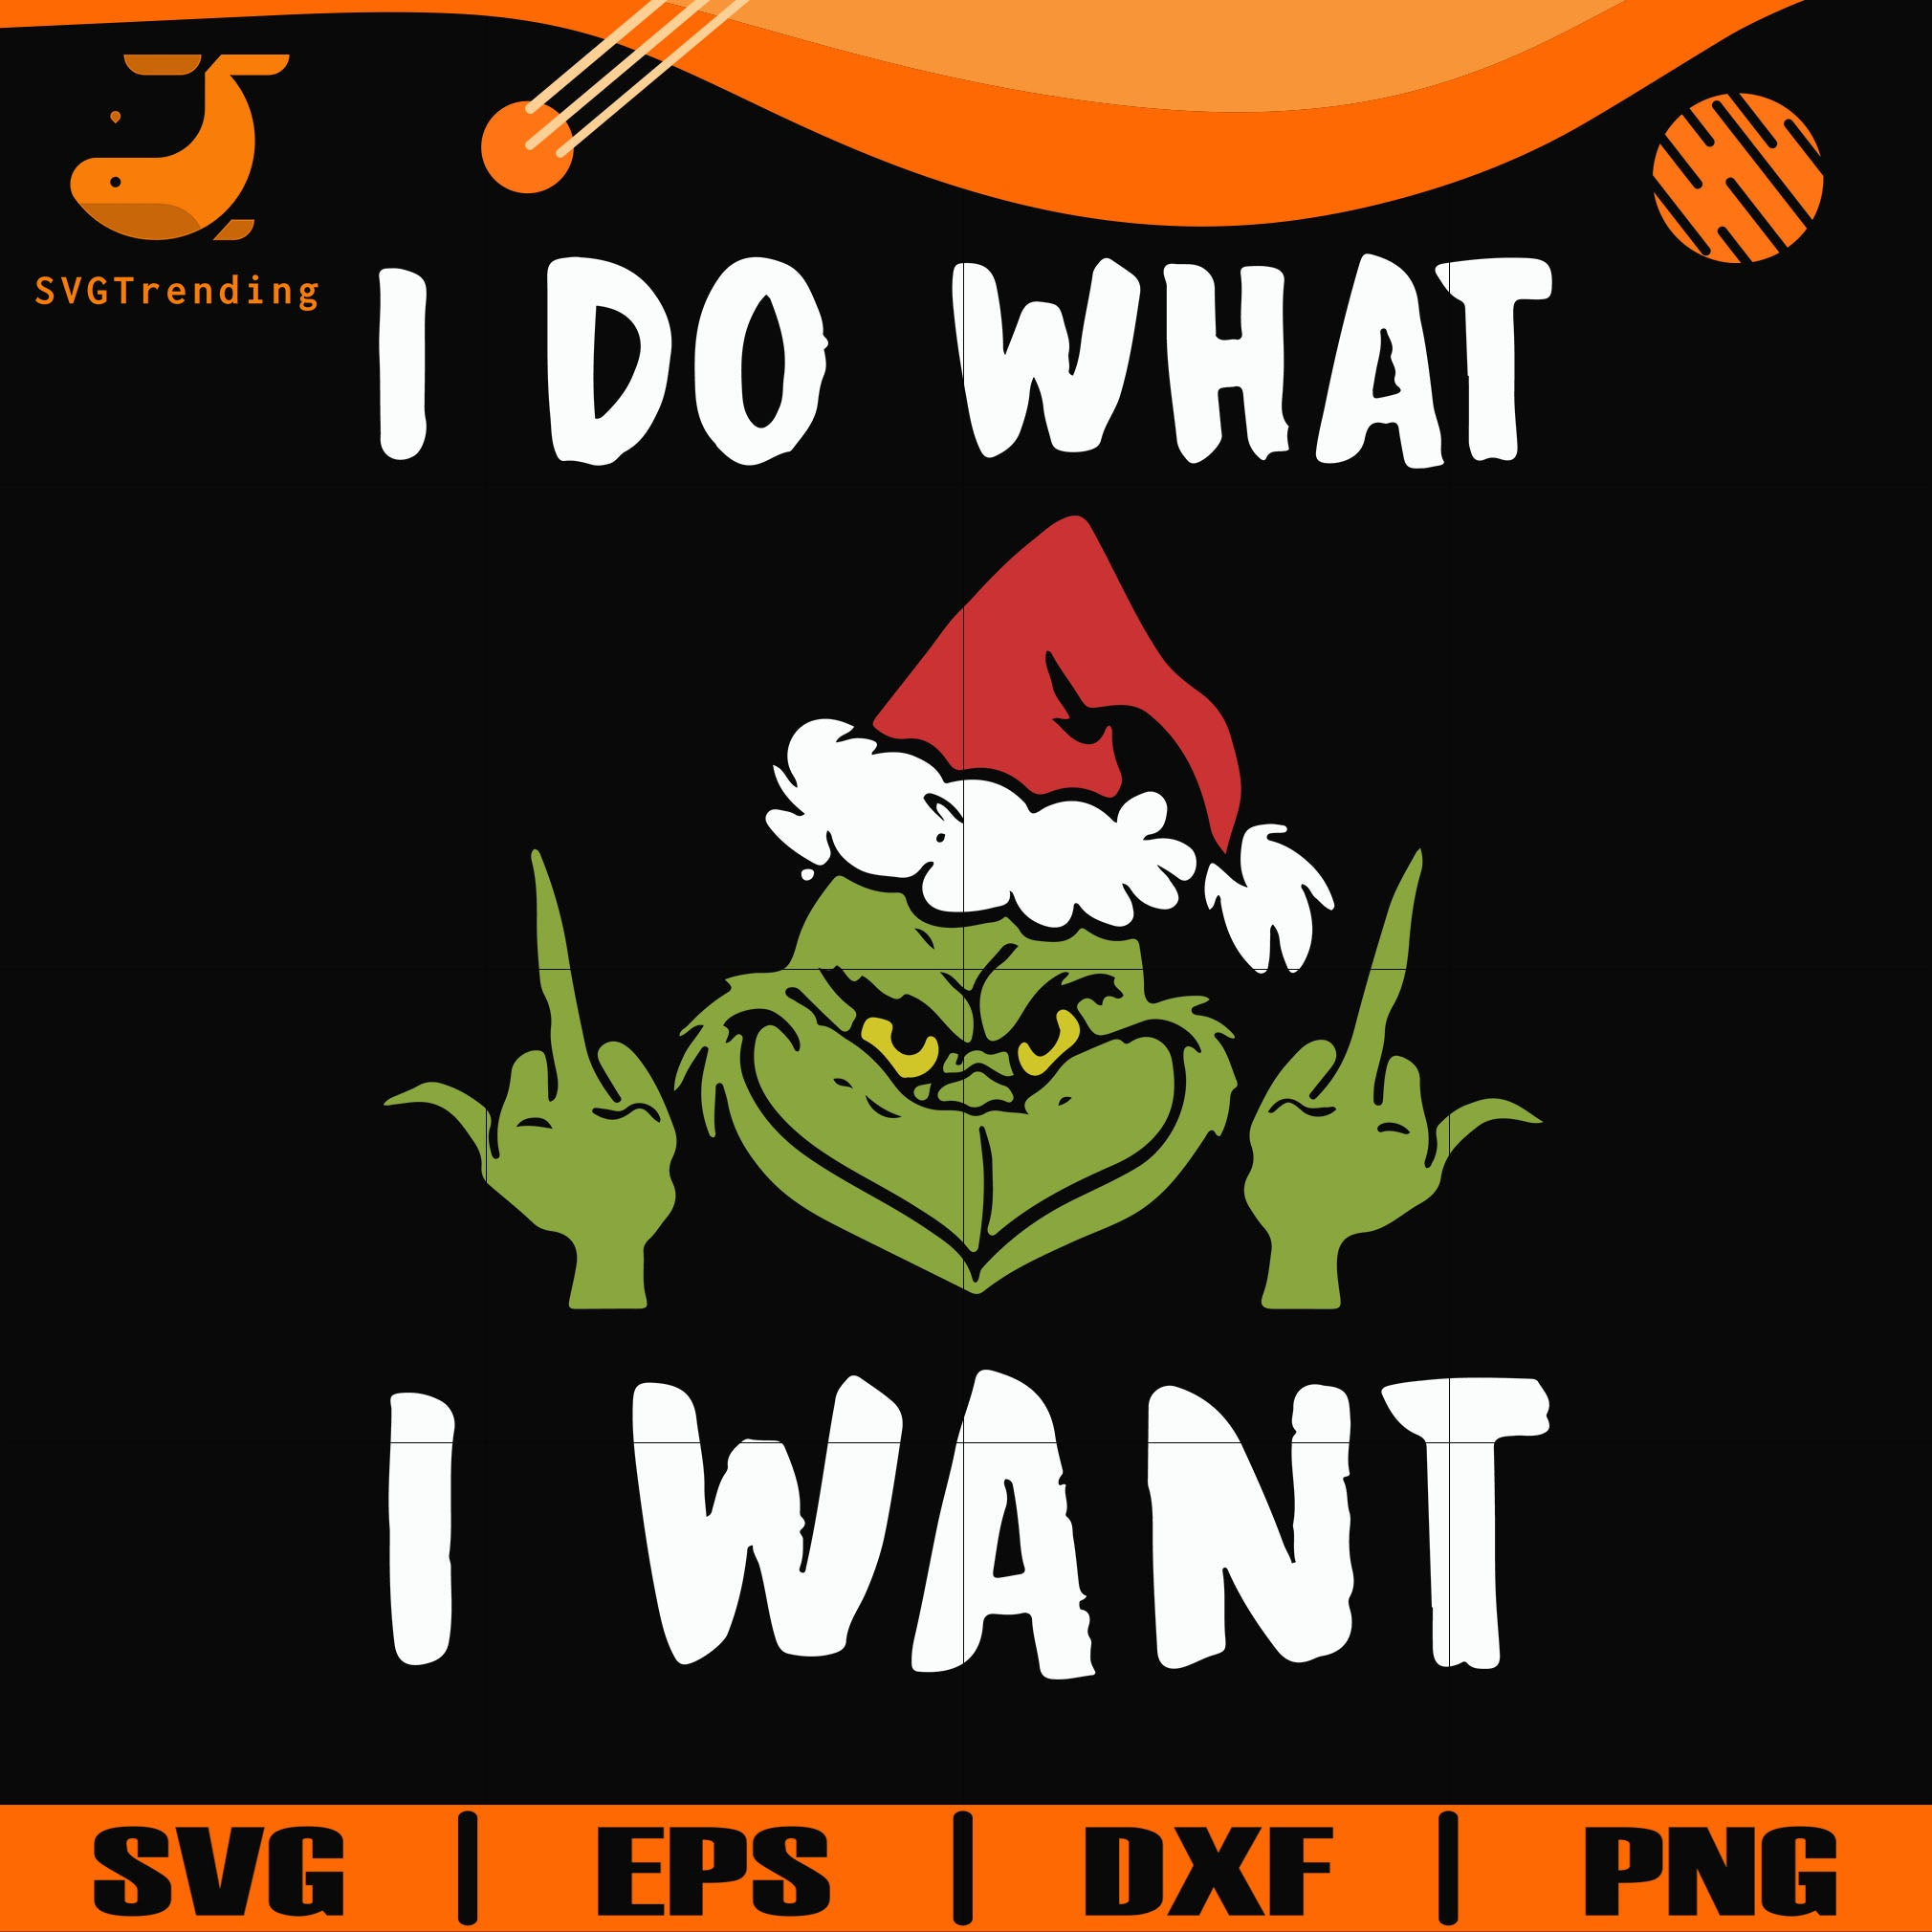 Do what i want svg, png, dxf, eps digital file NCRM13072024